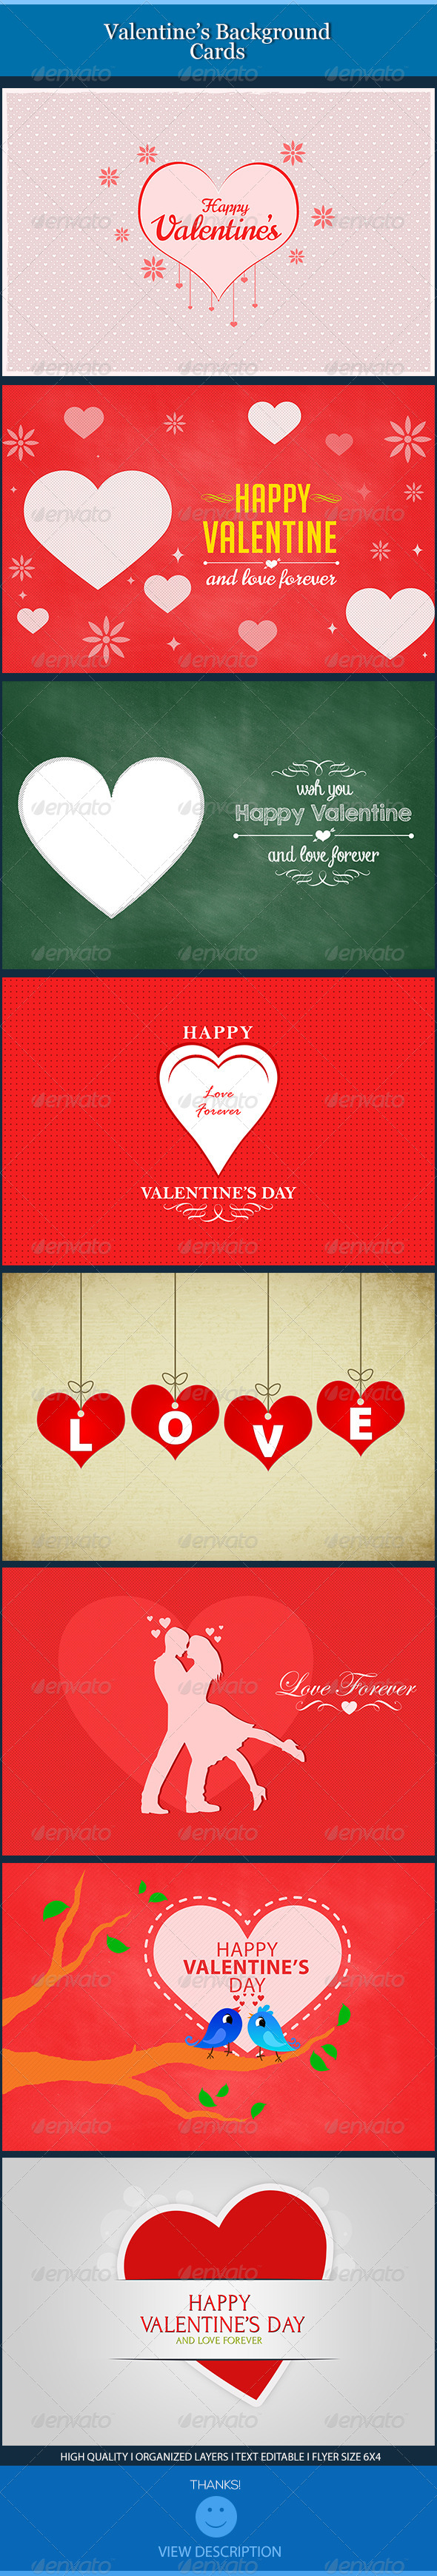 GraphicRiver Valentine Backgrounds Cards 6585091